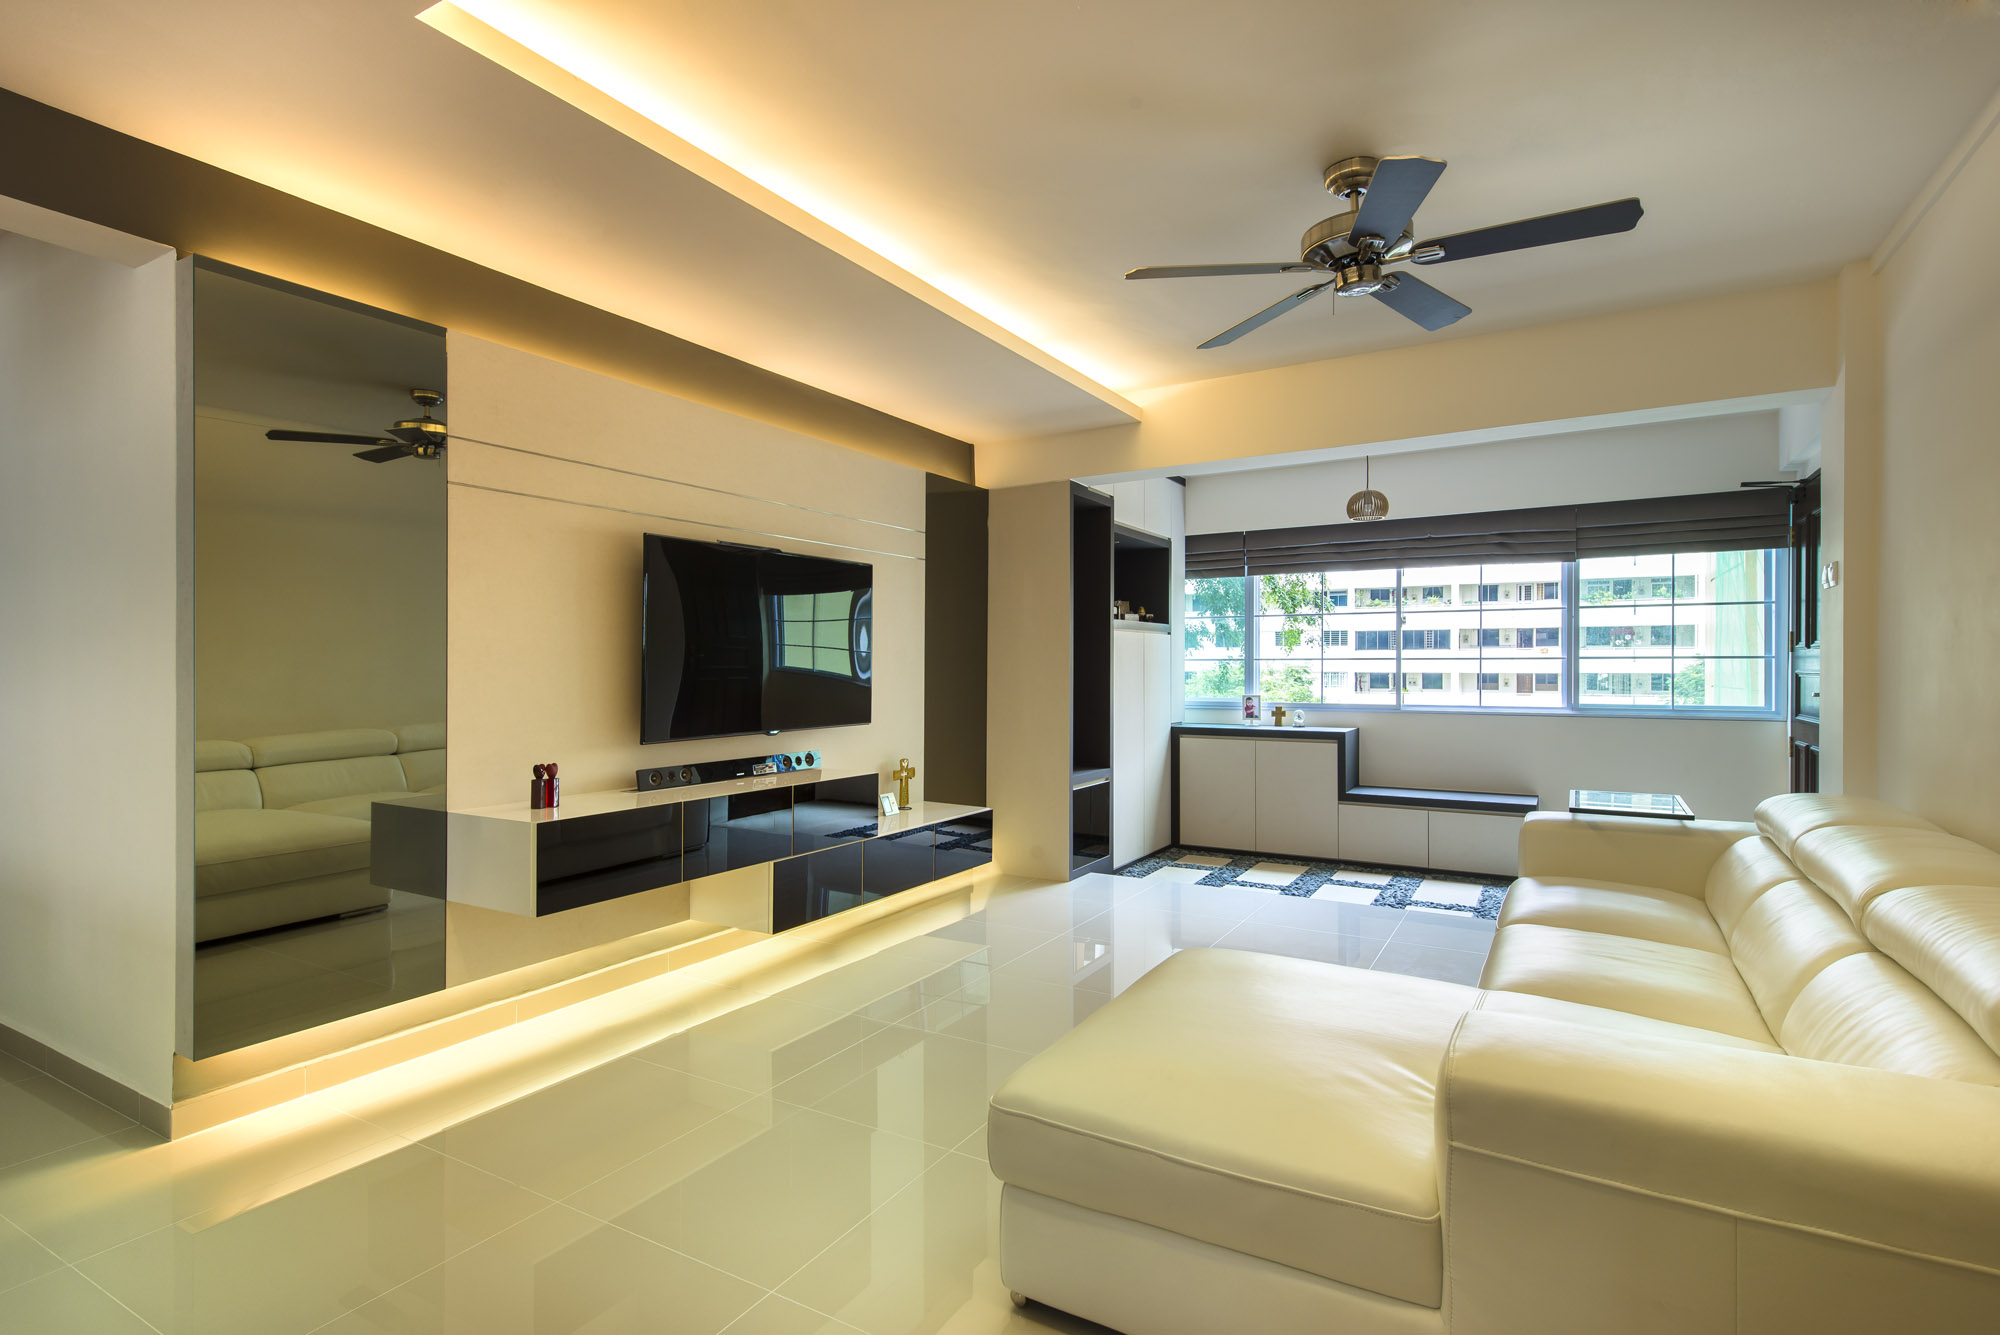 Case study hdb 5 rooms at bedok rezt relax interior for Interior design 4 room hdb flat